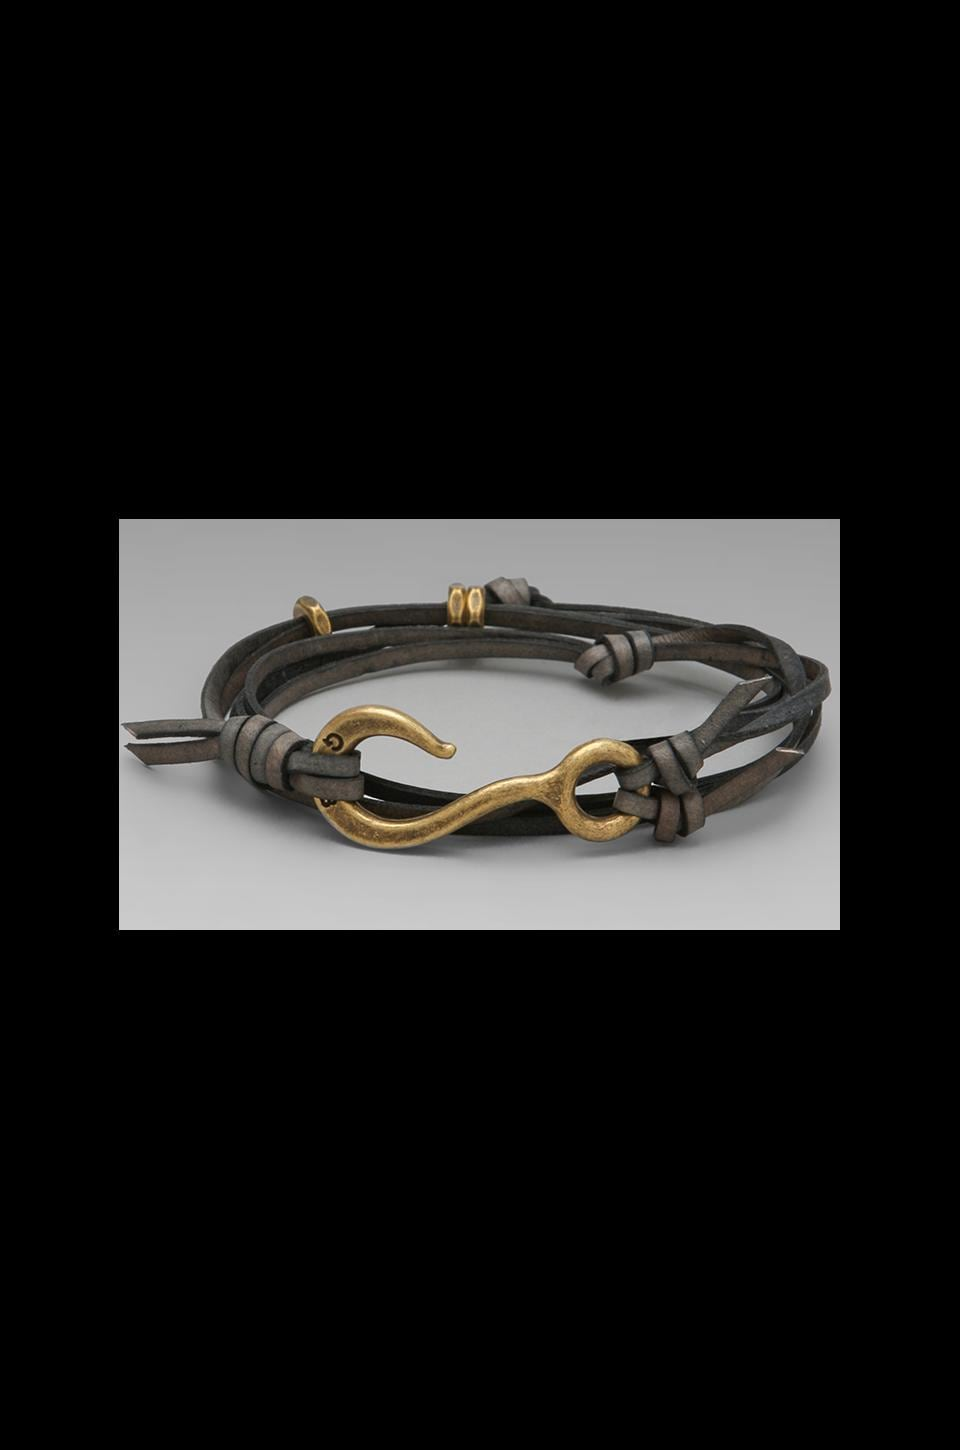 Giles & Brother Hook Bracelet with Leather Lashing in Brass and Antique Grey Leather